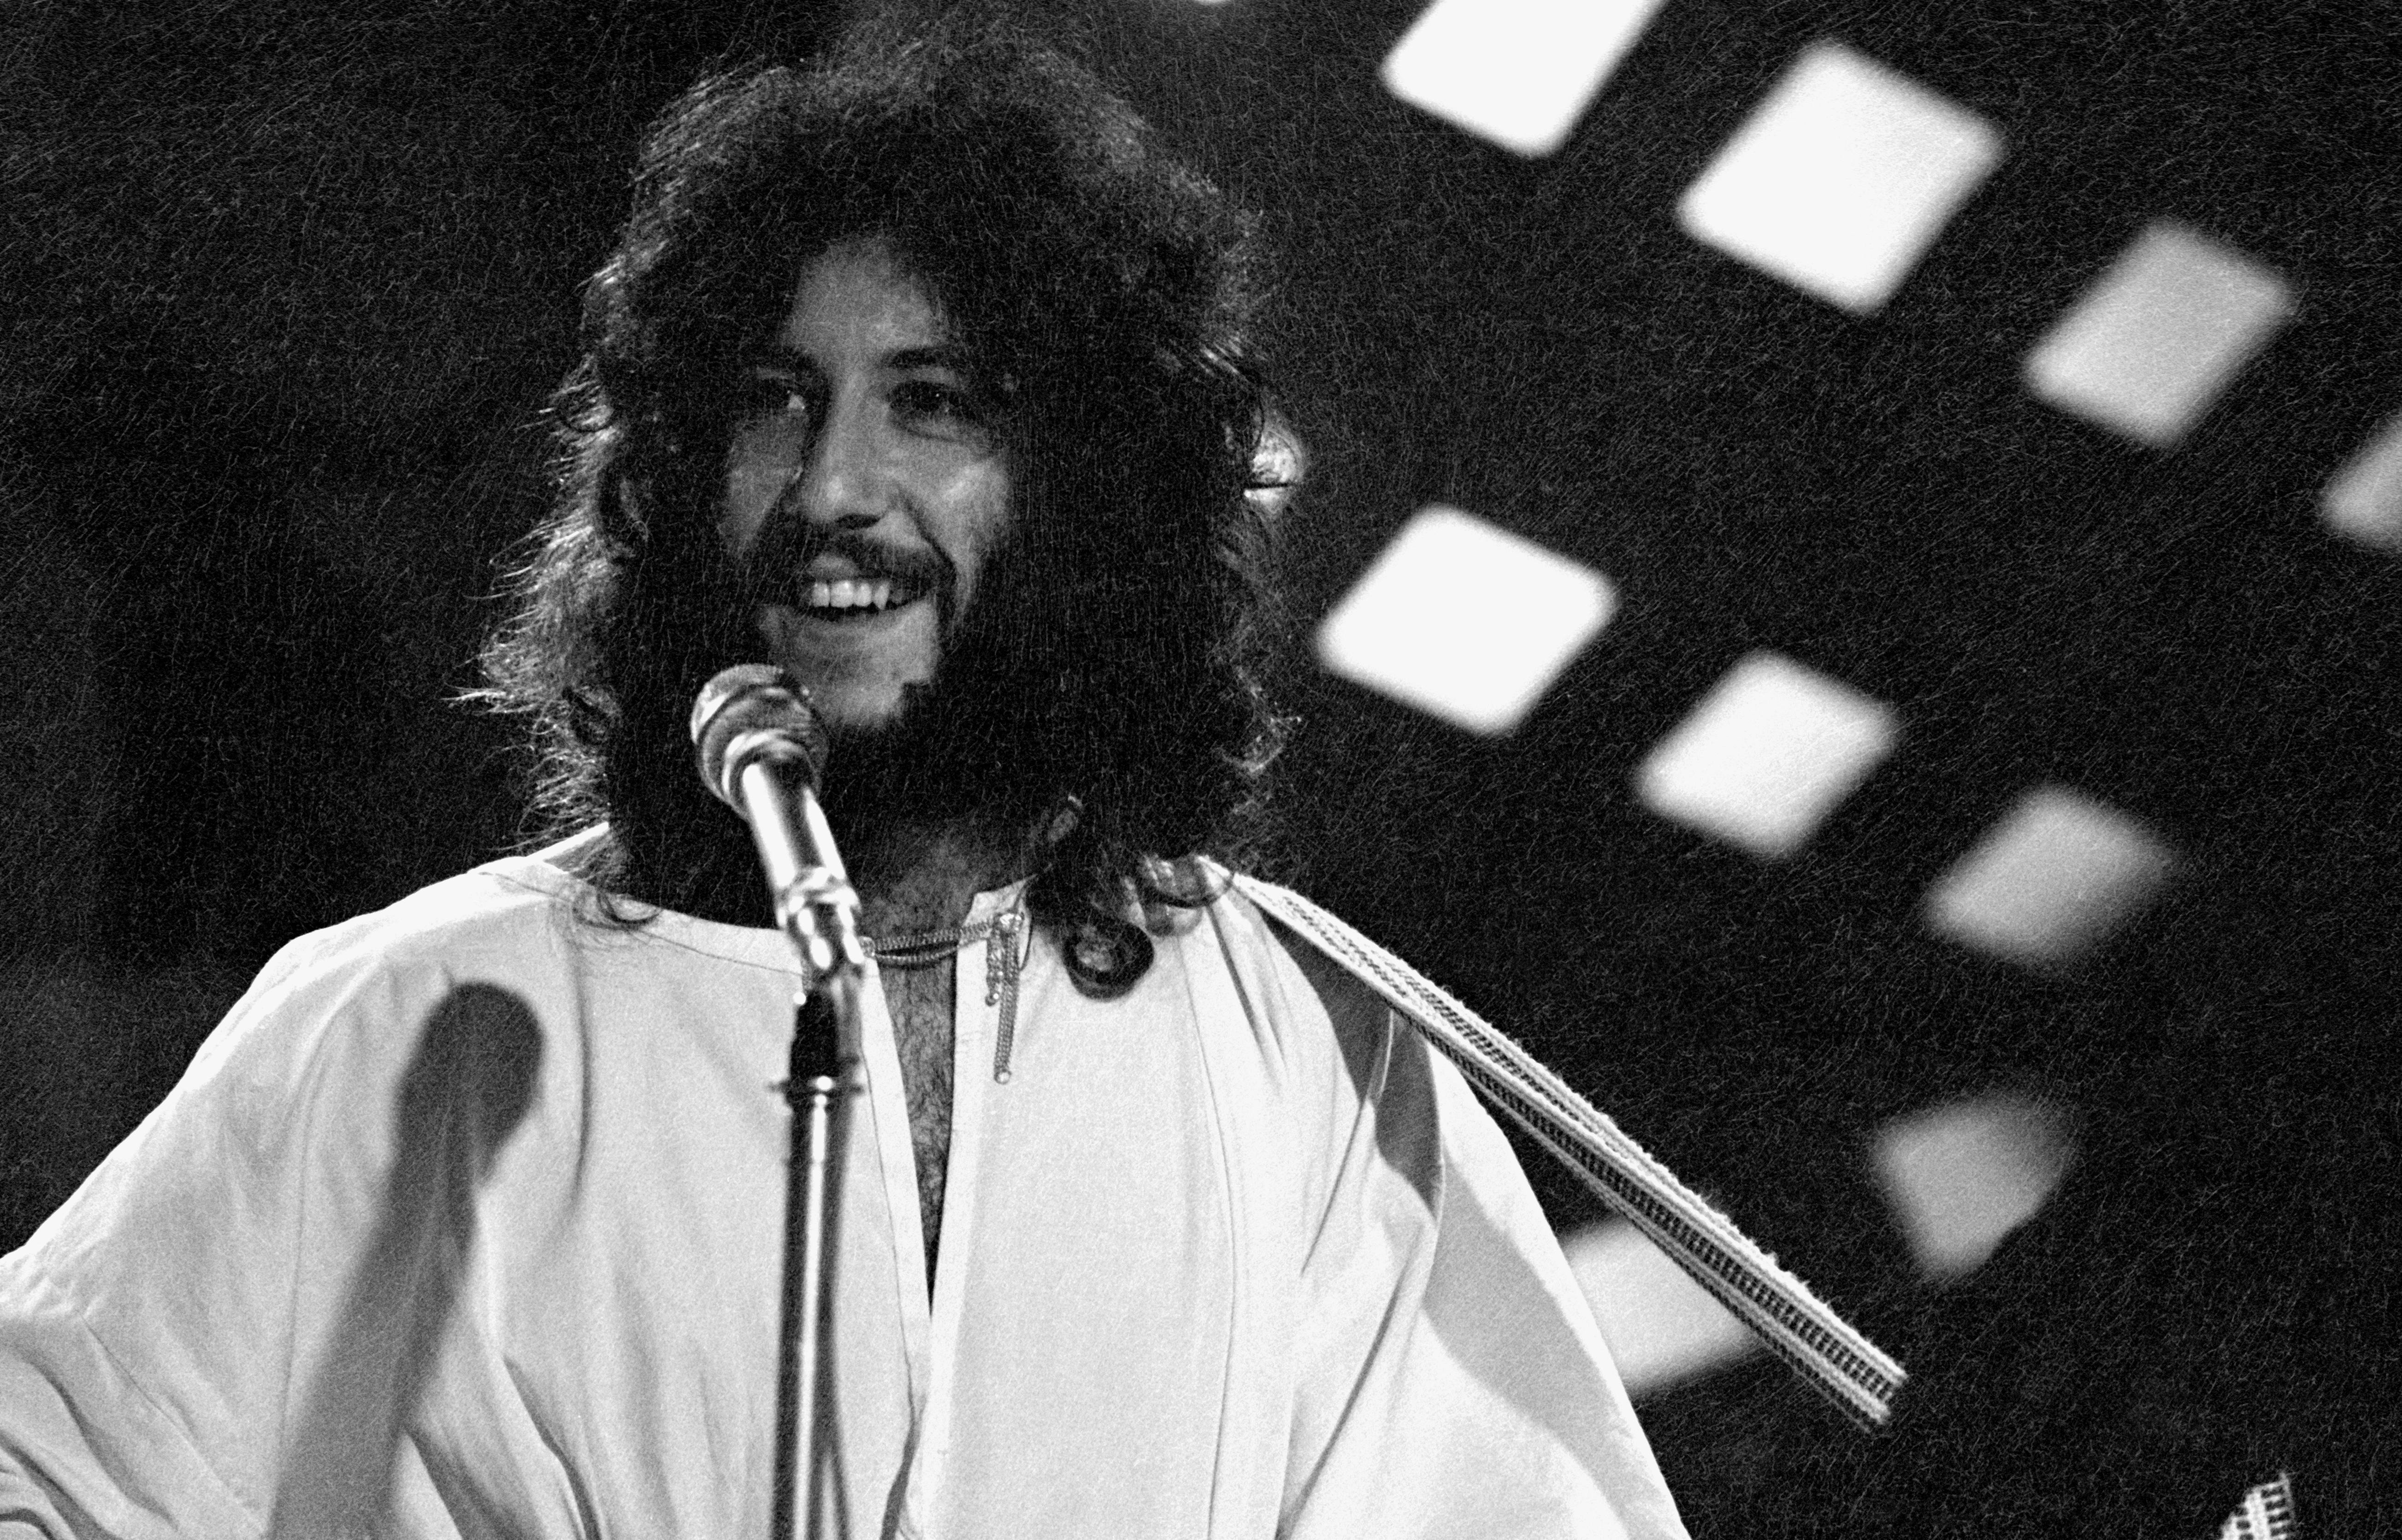 BBC TV CENTRE  Photo of FLEETWOOD MAC and Peter GREEN, with Fleetwood Mac, performing on TV Show on January 1.